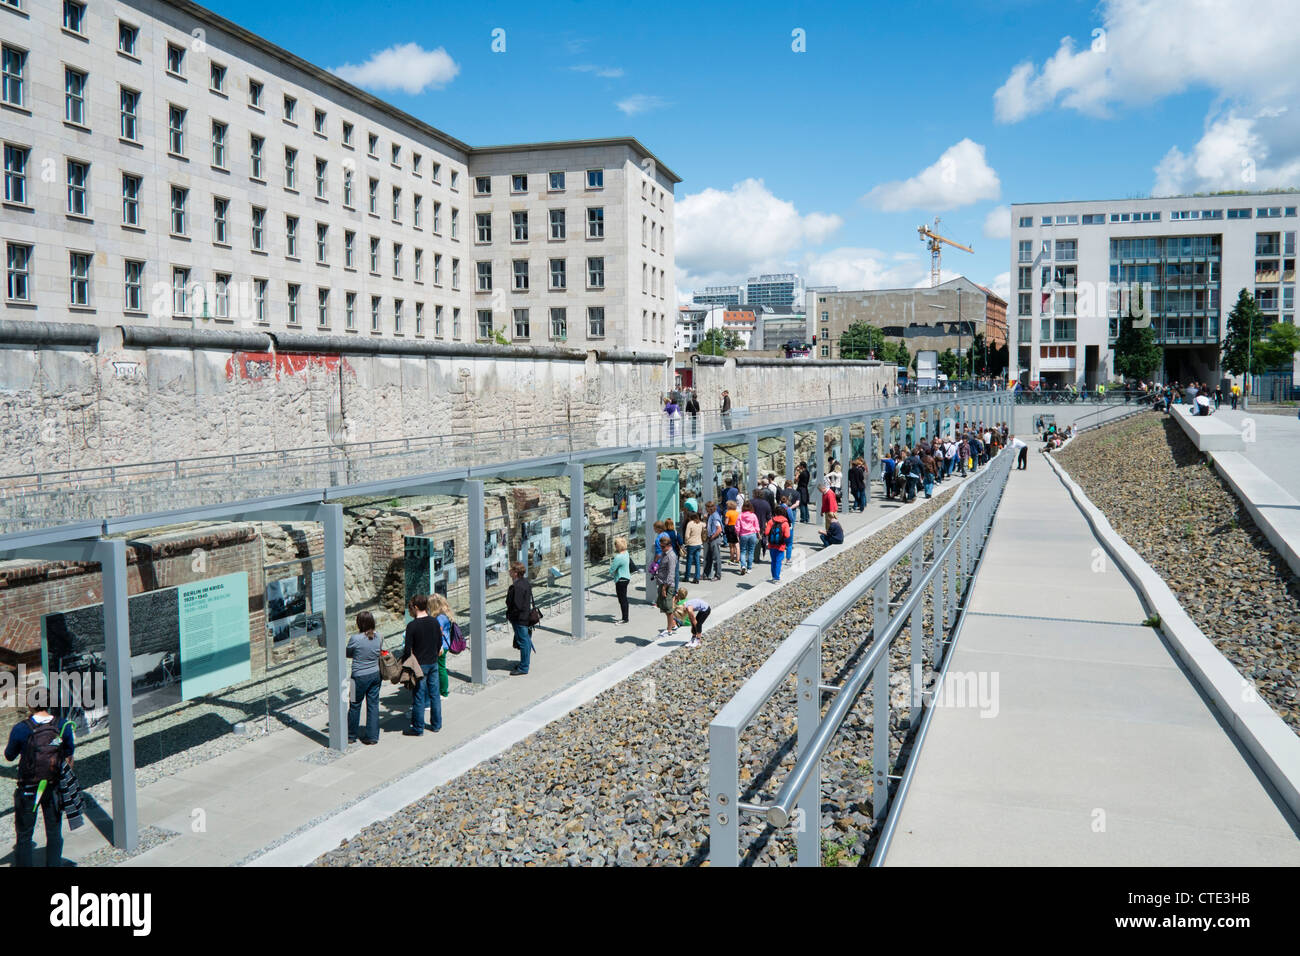 Exhibition Topography of Terror at site of former Gestapo Headquarters in Berlin Germany - Stock Image